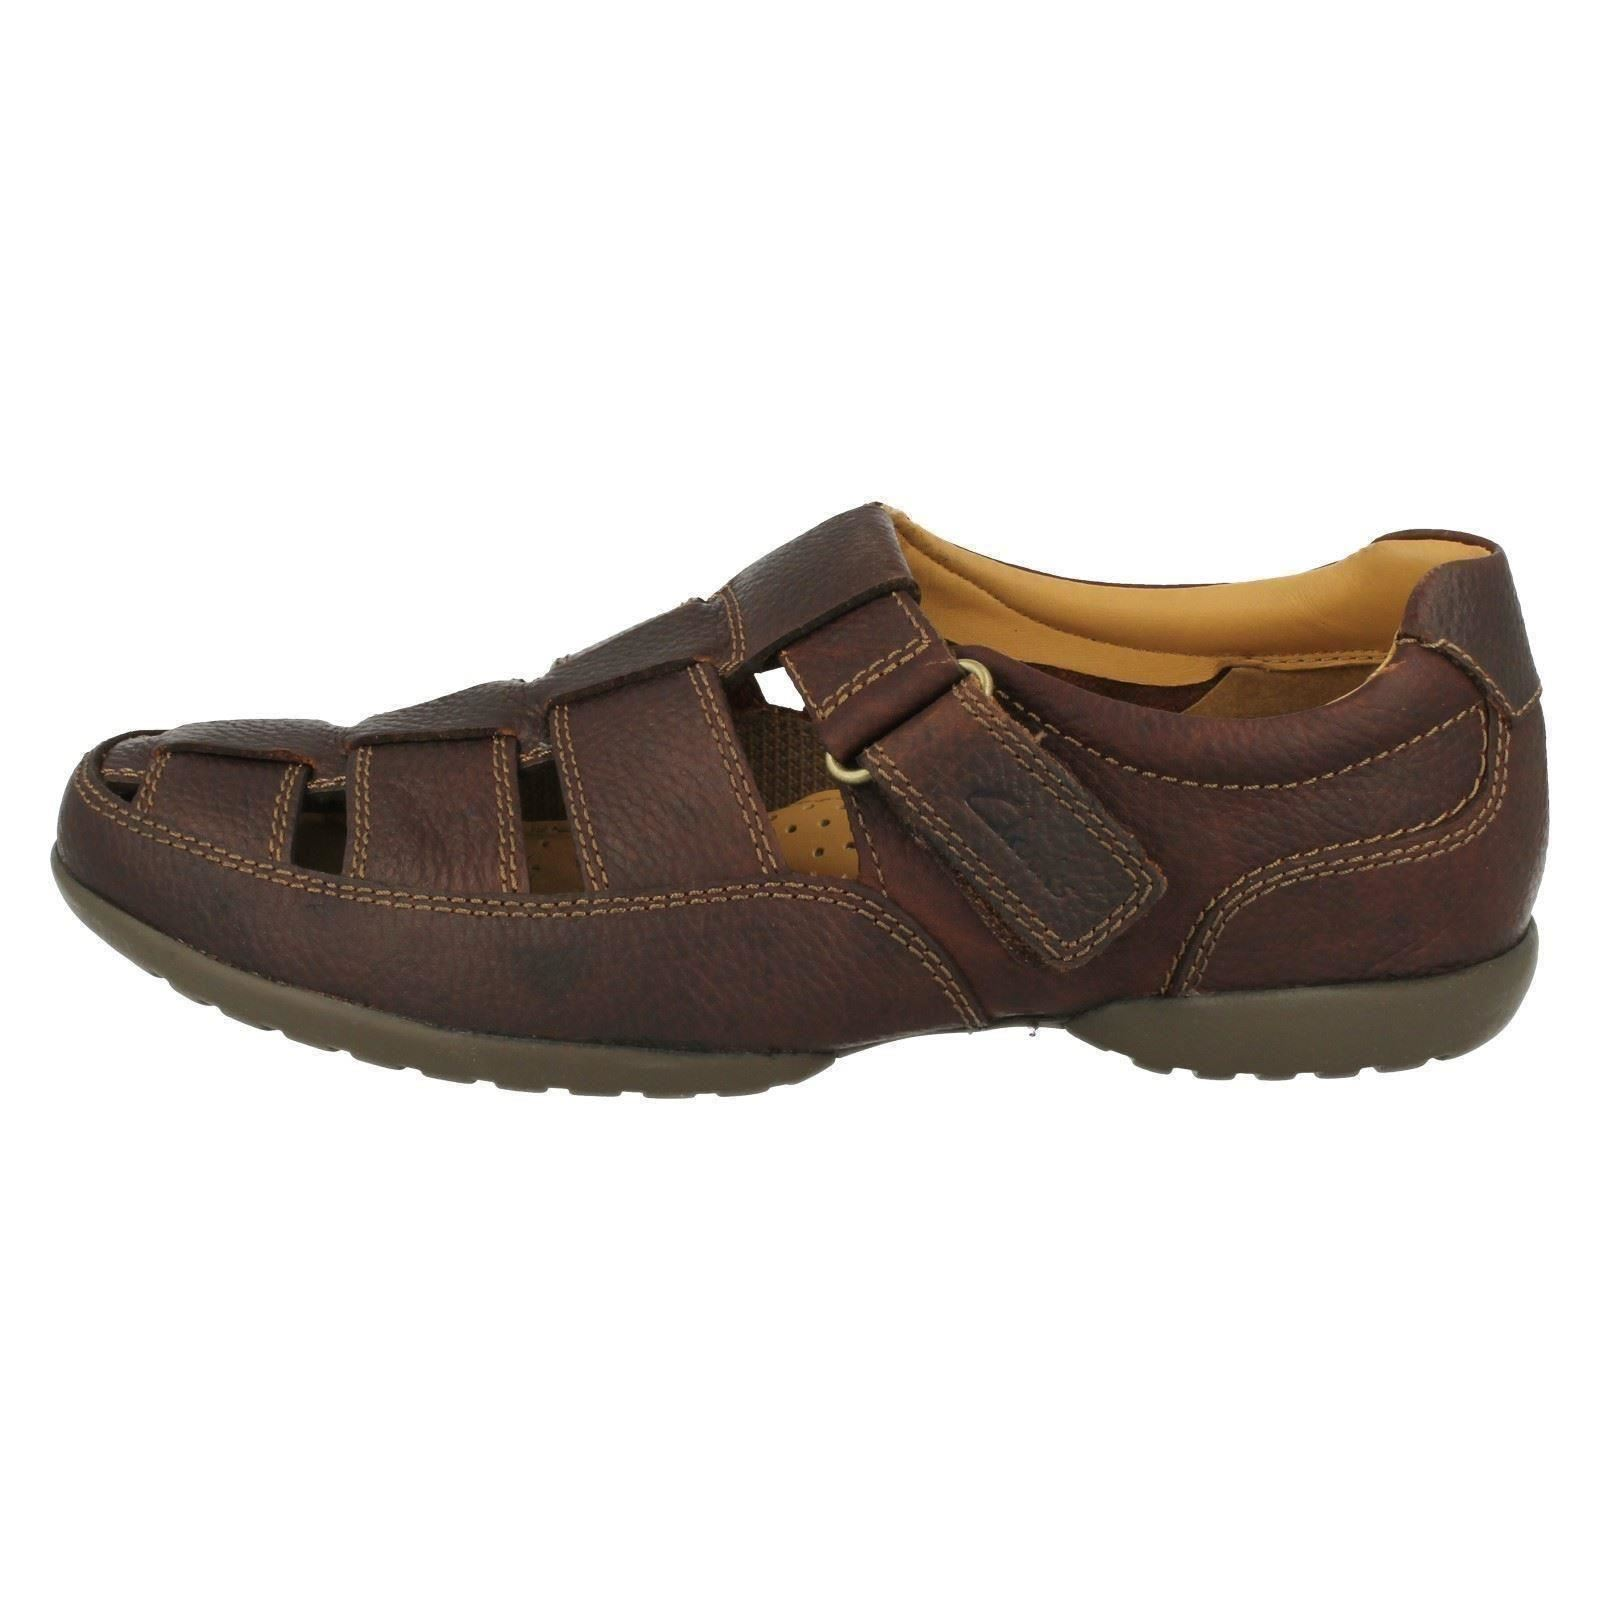 Mens Clarks Loop Hook & Loop Clarks Sandals *Recline Open* c49d02